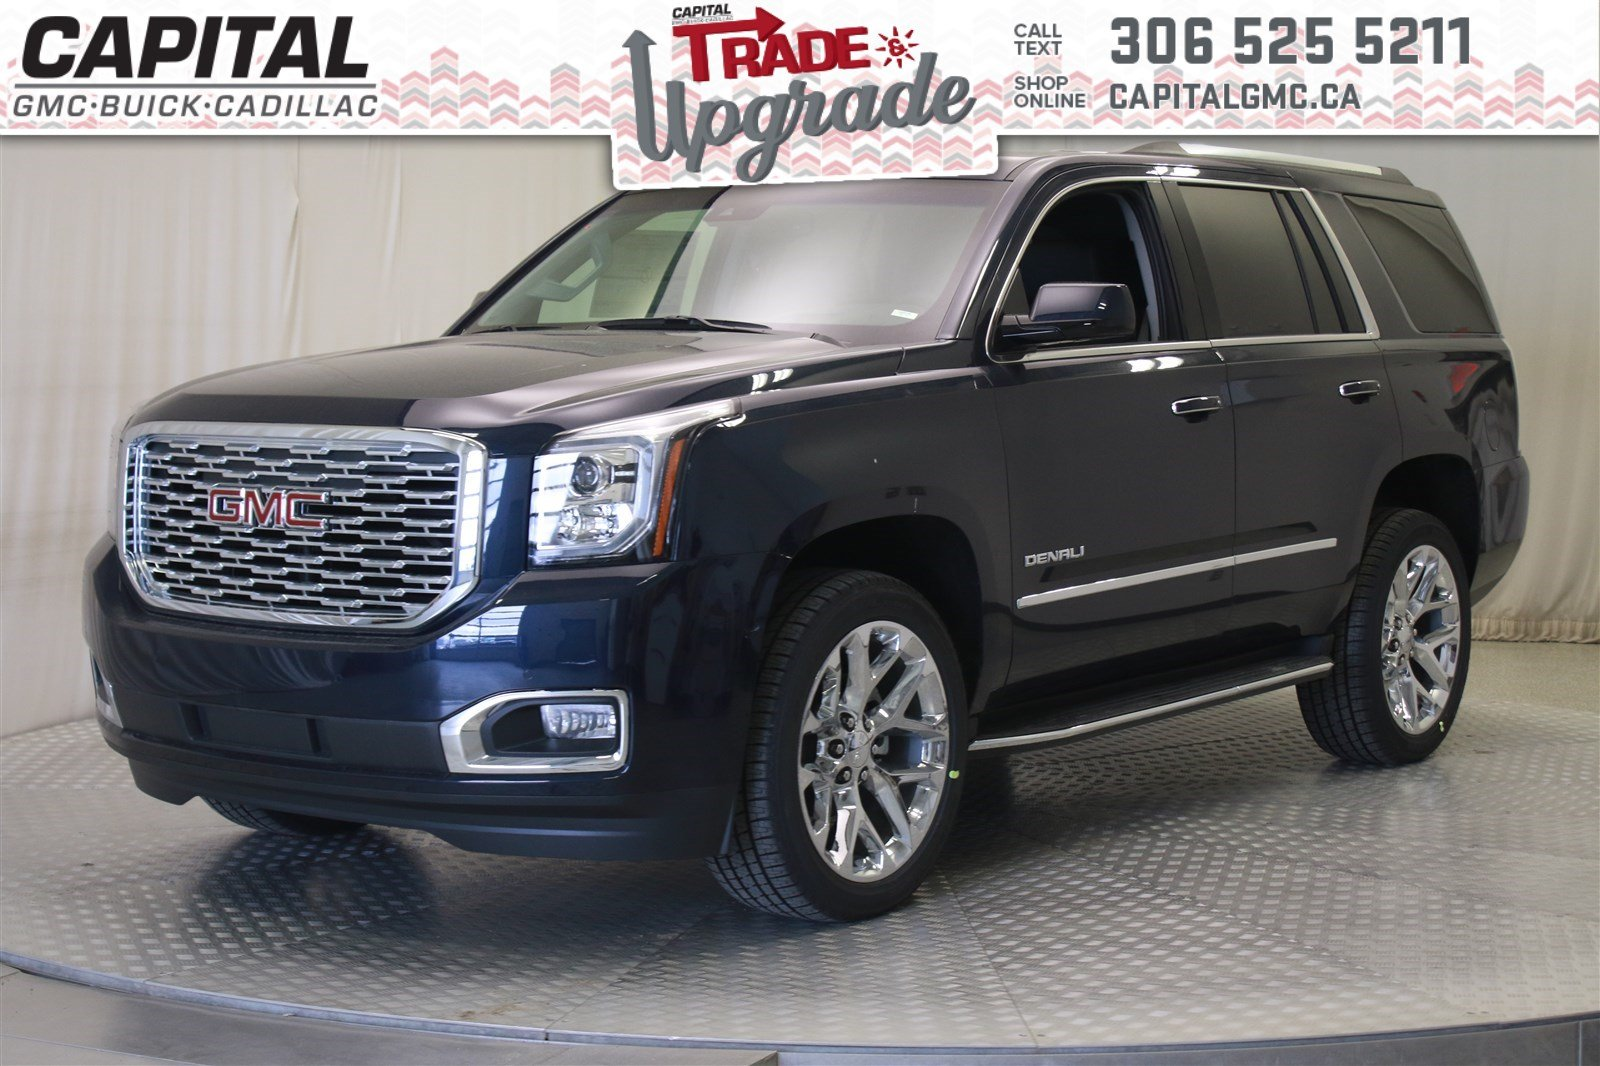 New 2019 Gmc Yukon Denali Suv In Regina 39101 Capital Auto Group